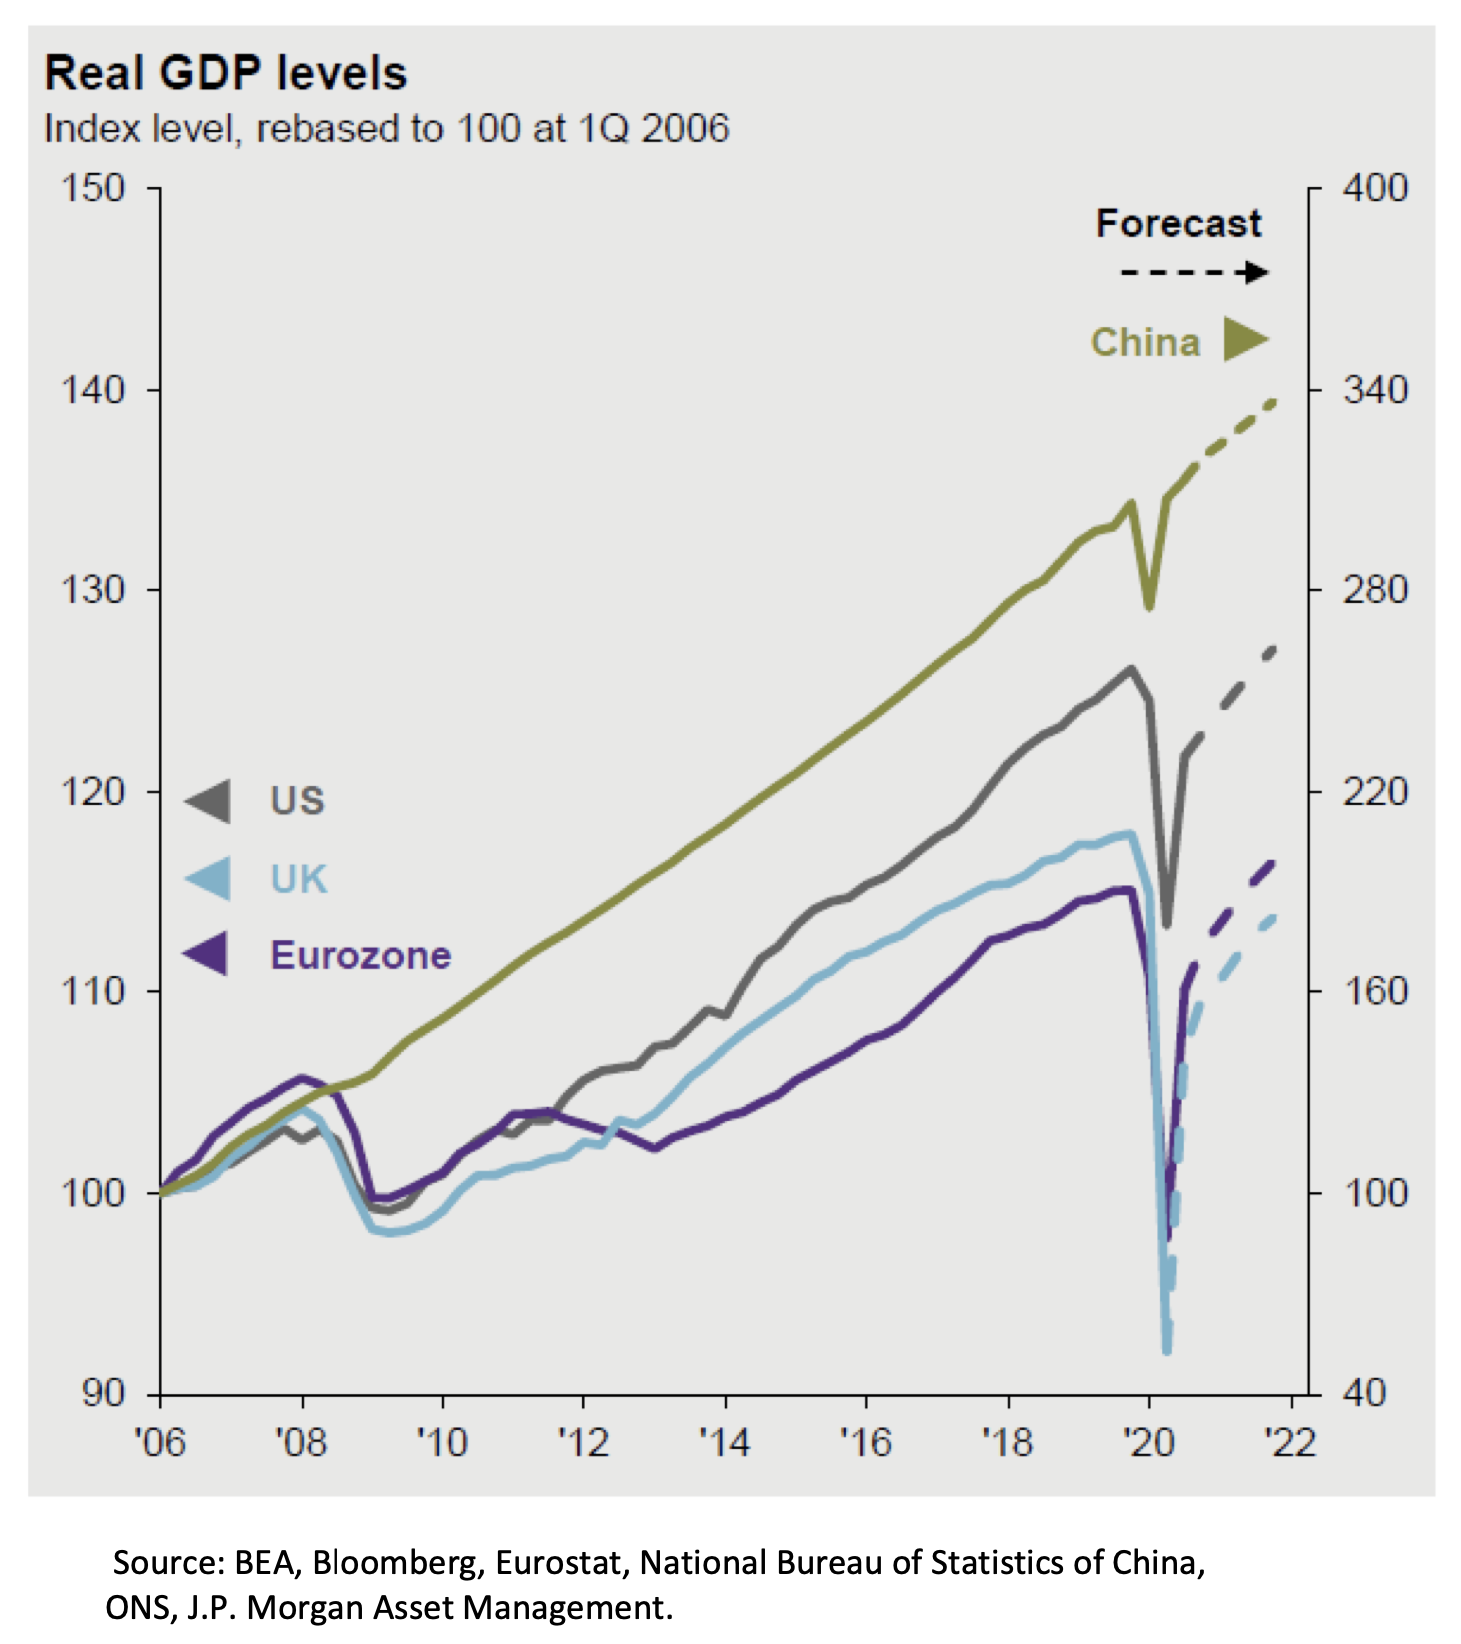 Real GDP Levels